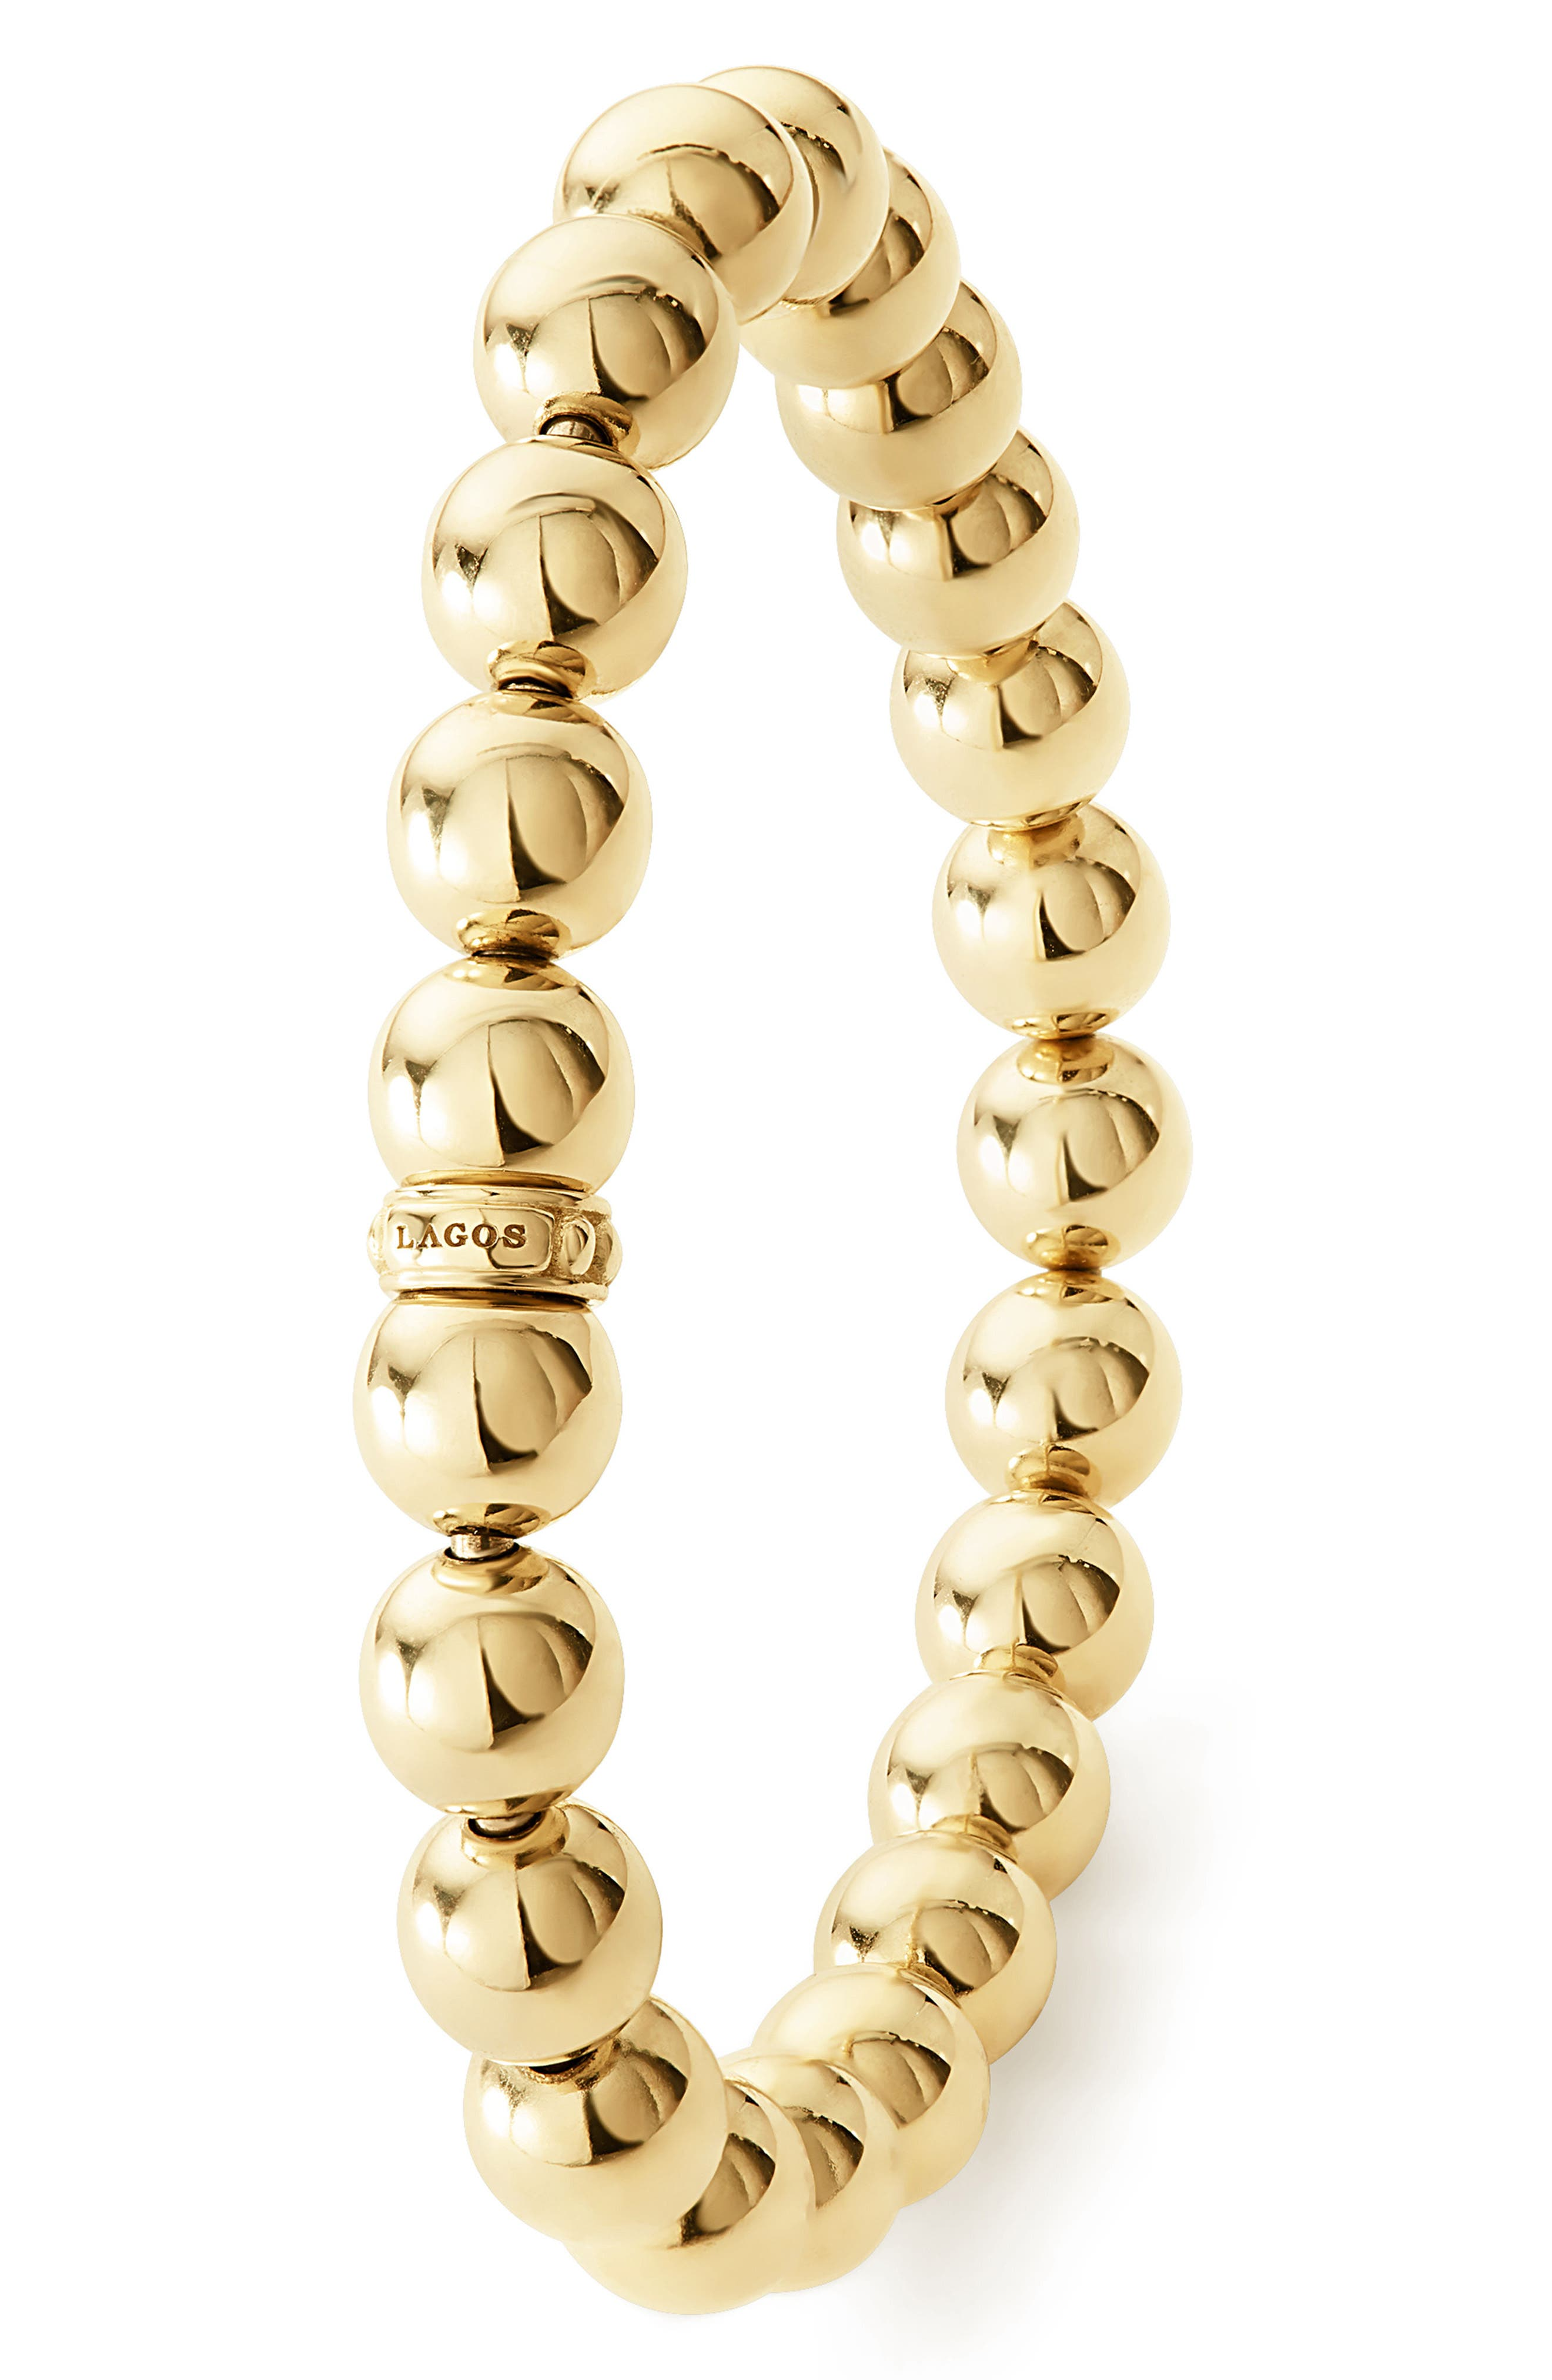 Caviar Gold Ball Stretch Bracelet,                             Alternate thumbnail 3, color,                             GOLD